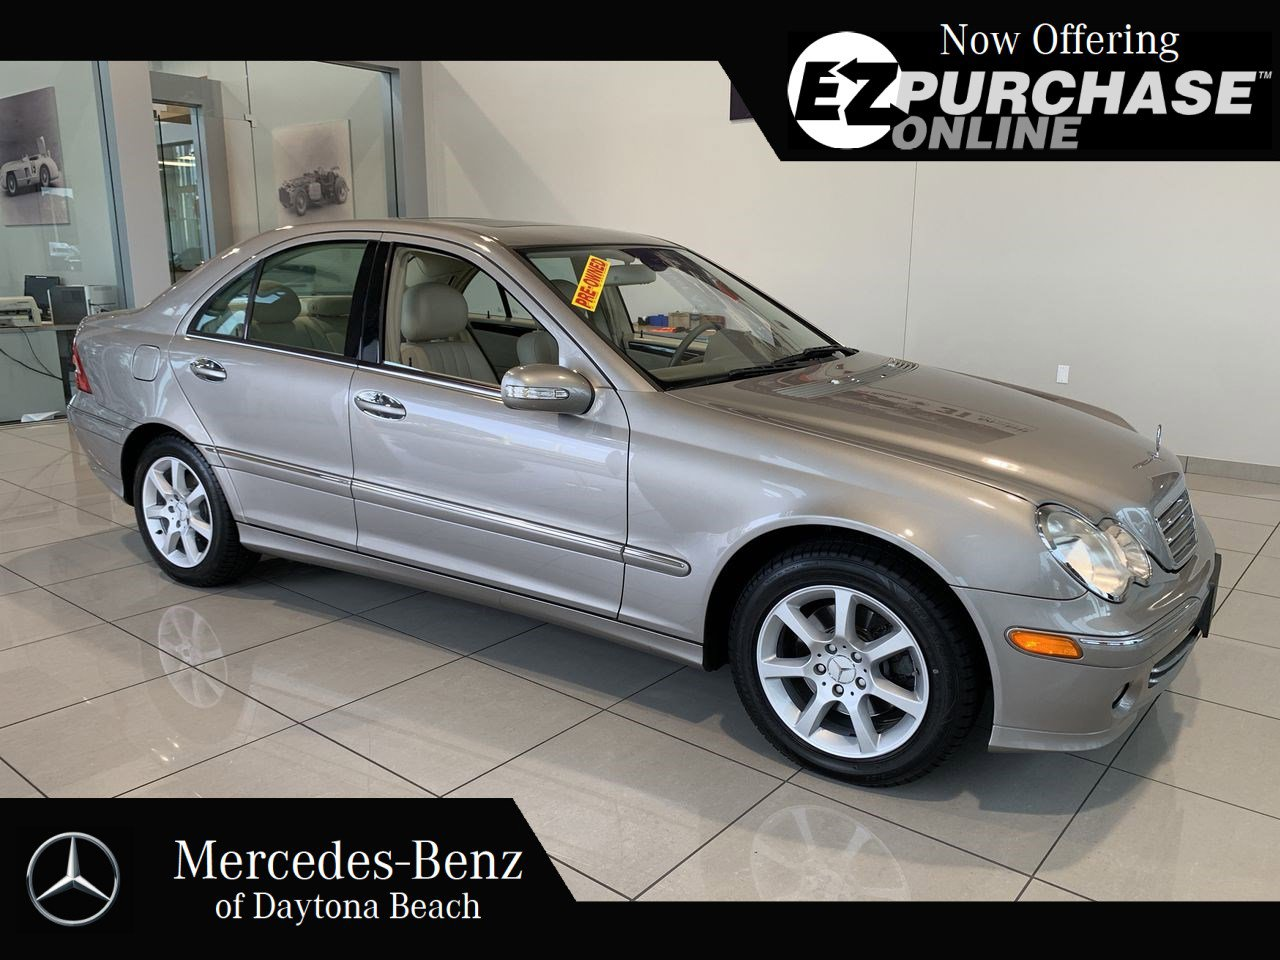 Pre-Owned 2007 Mercedes-Benz C-Class C280 Luxury 4MATIC®